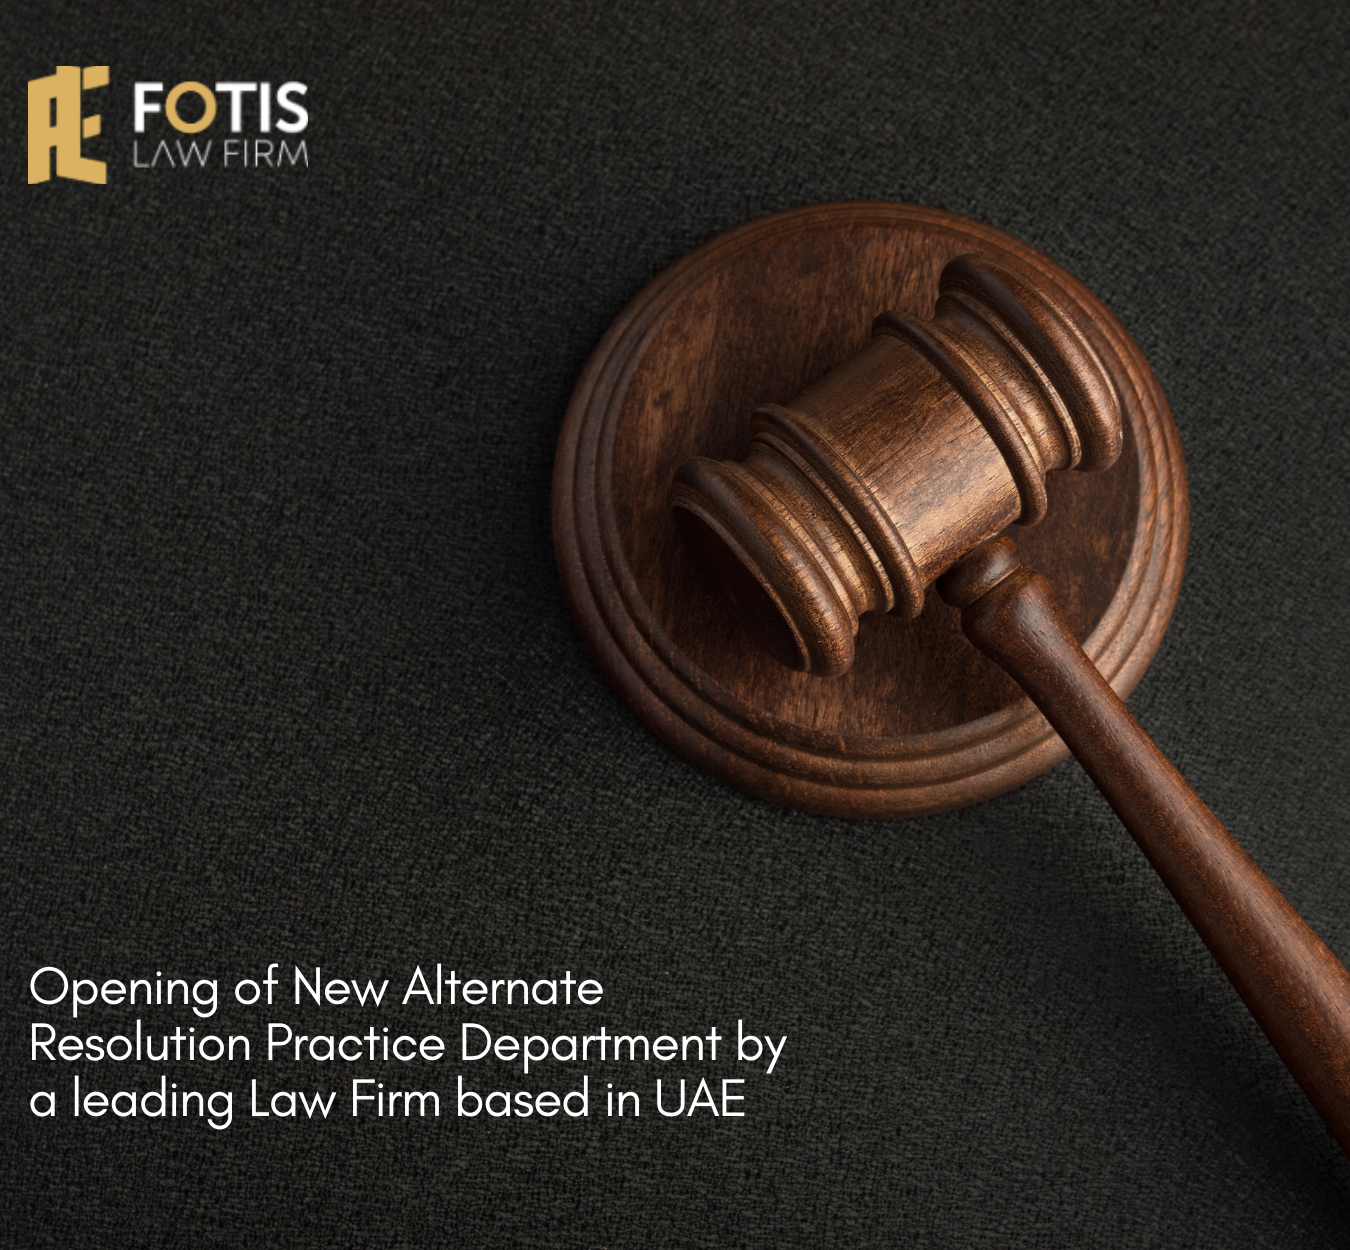 The Opening of New Alternate Resolution Practice Department by a leading Law Firm based in UAE.